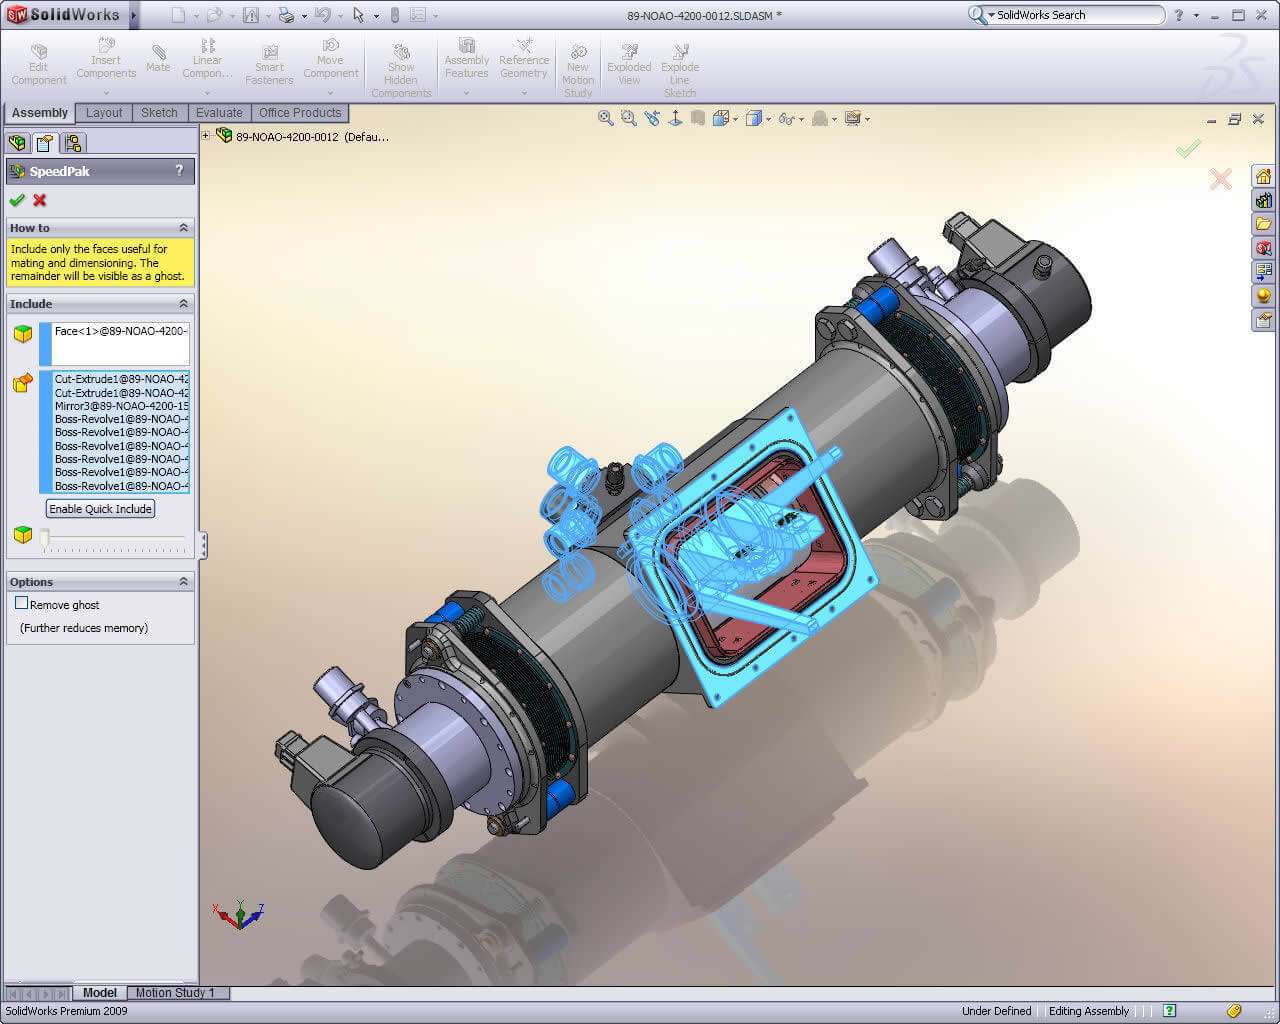 SOLIDWORKS SpeedPak